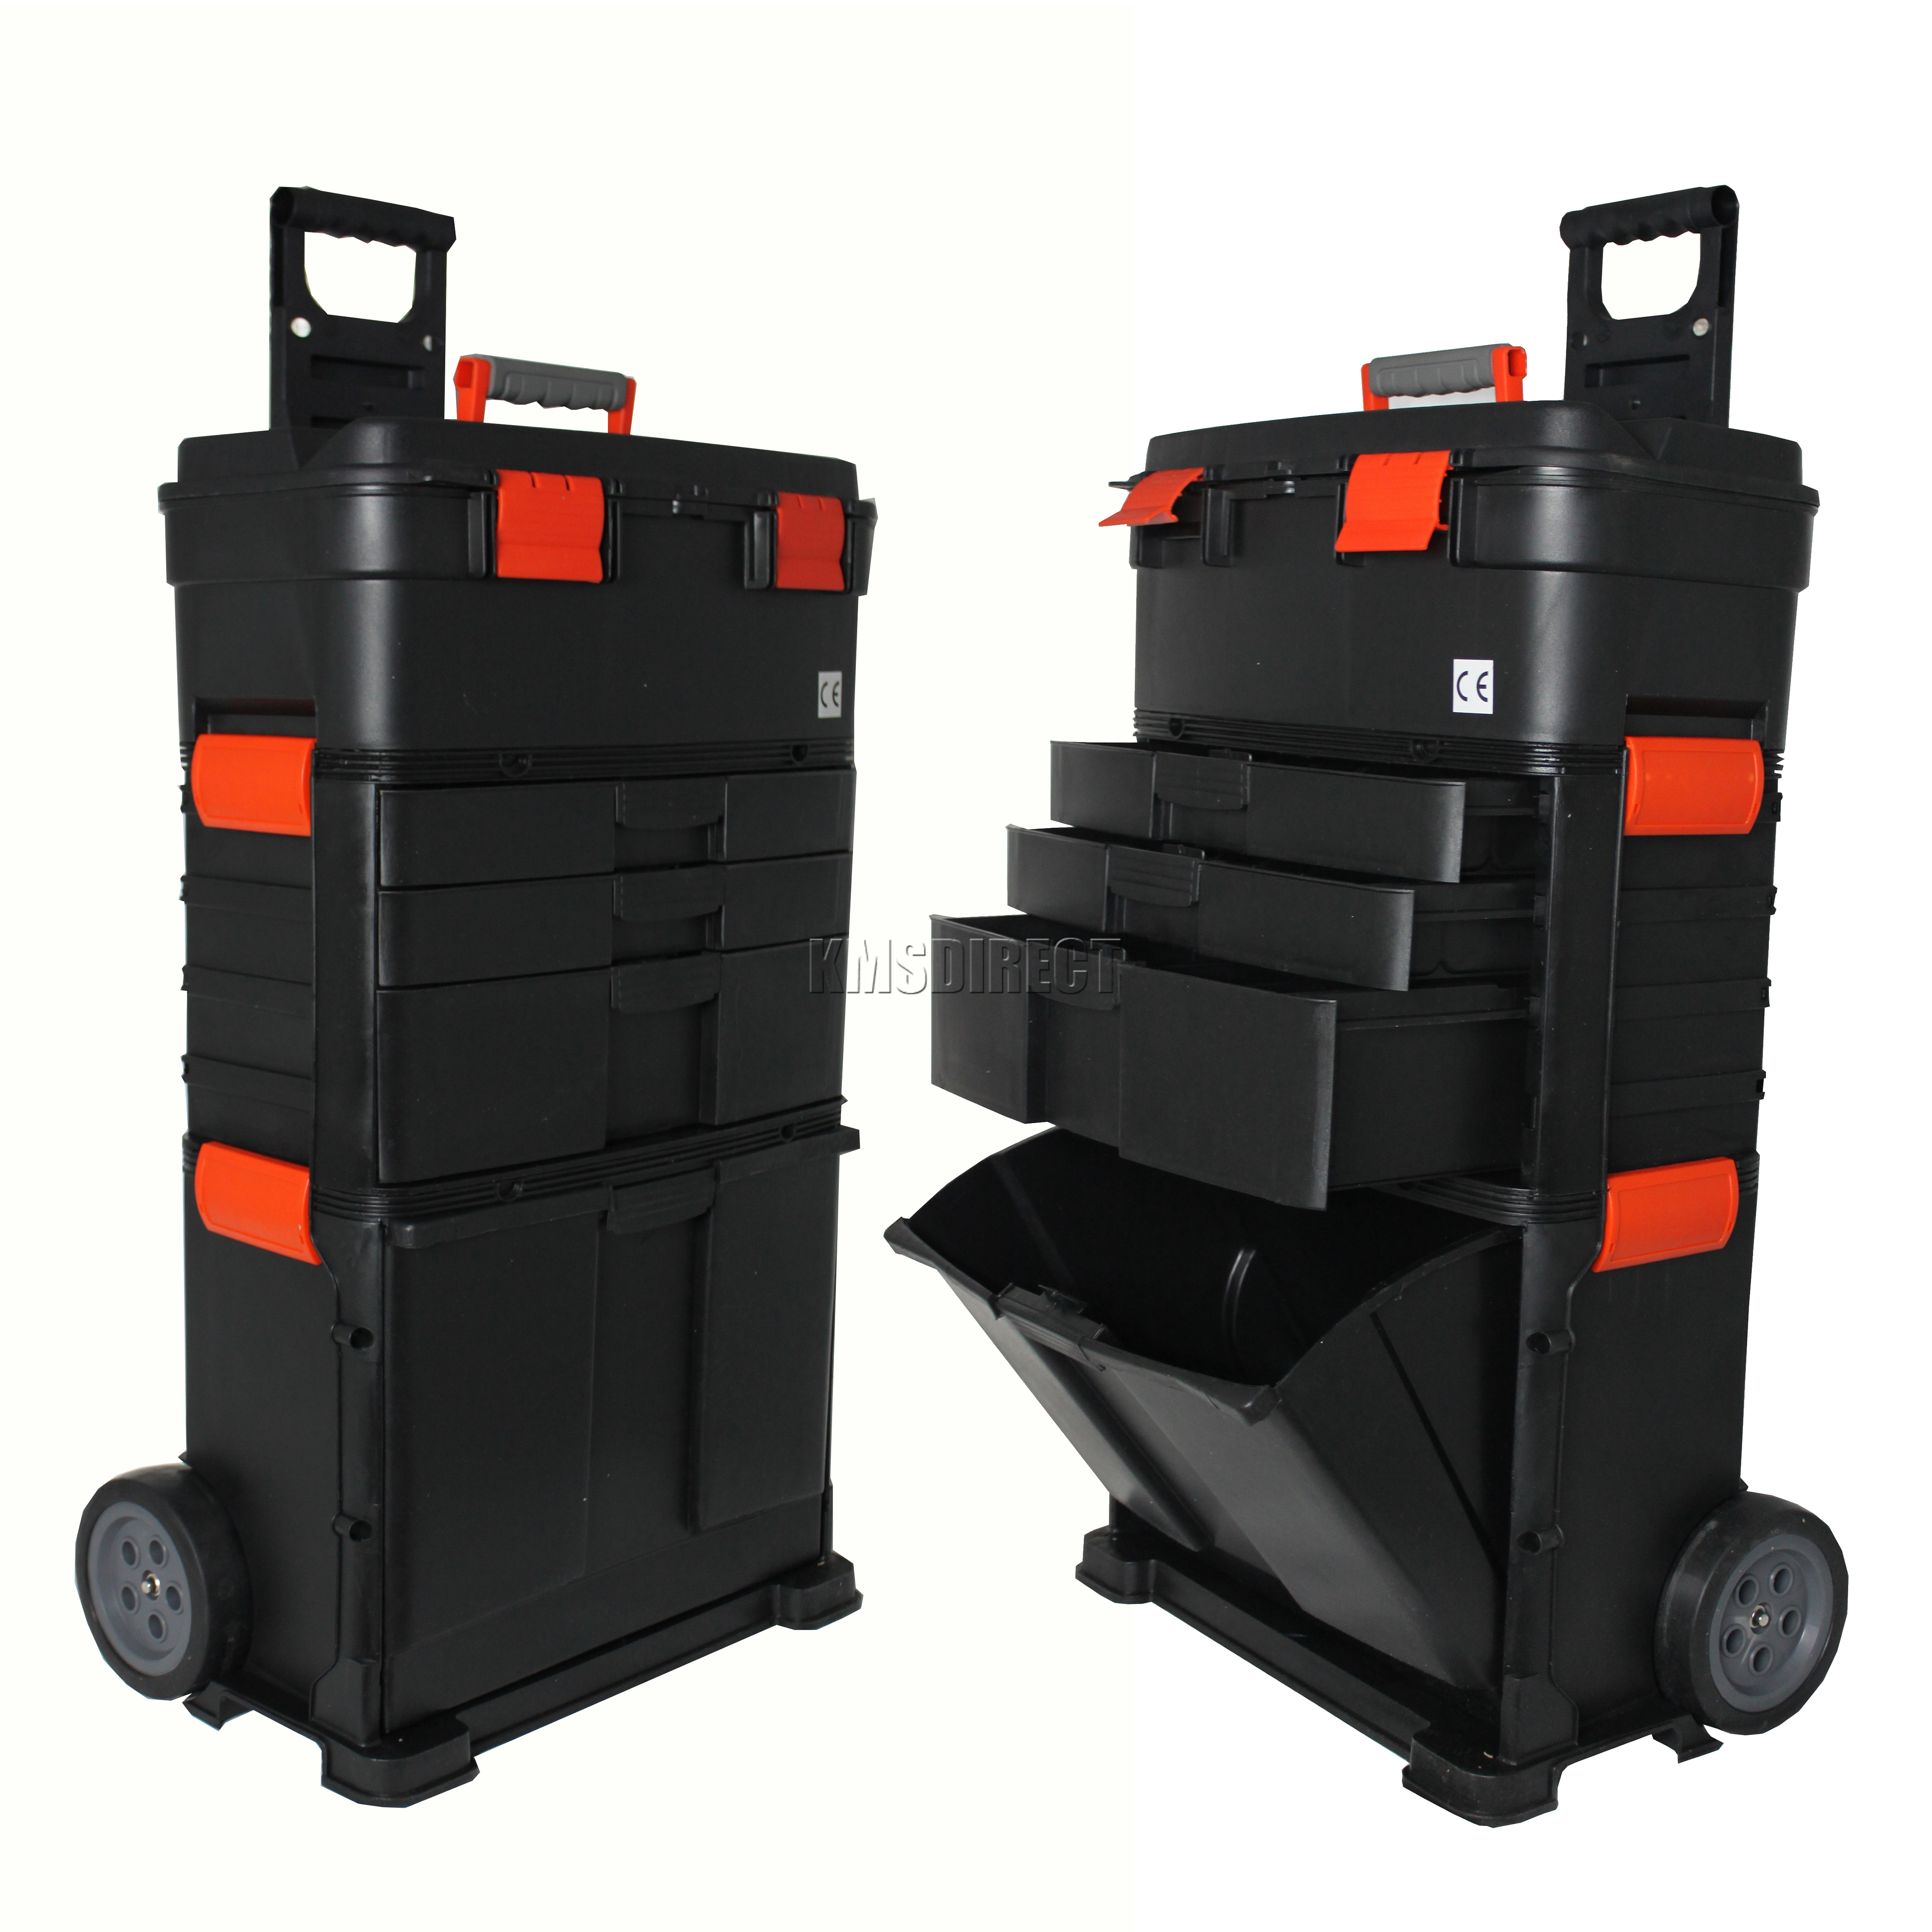 New mobile roller work shop chest trolley cart storage tool box toolbox on wheel ebay - The mobile office working on two wheels ...